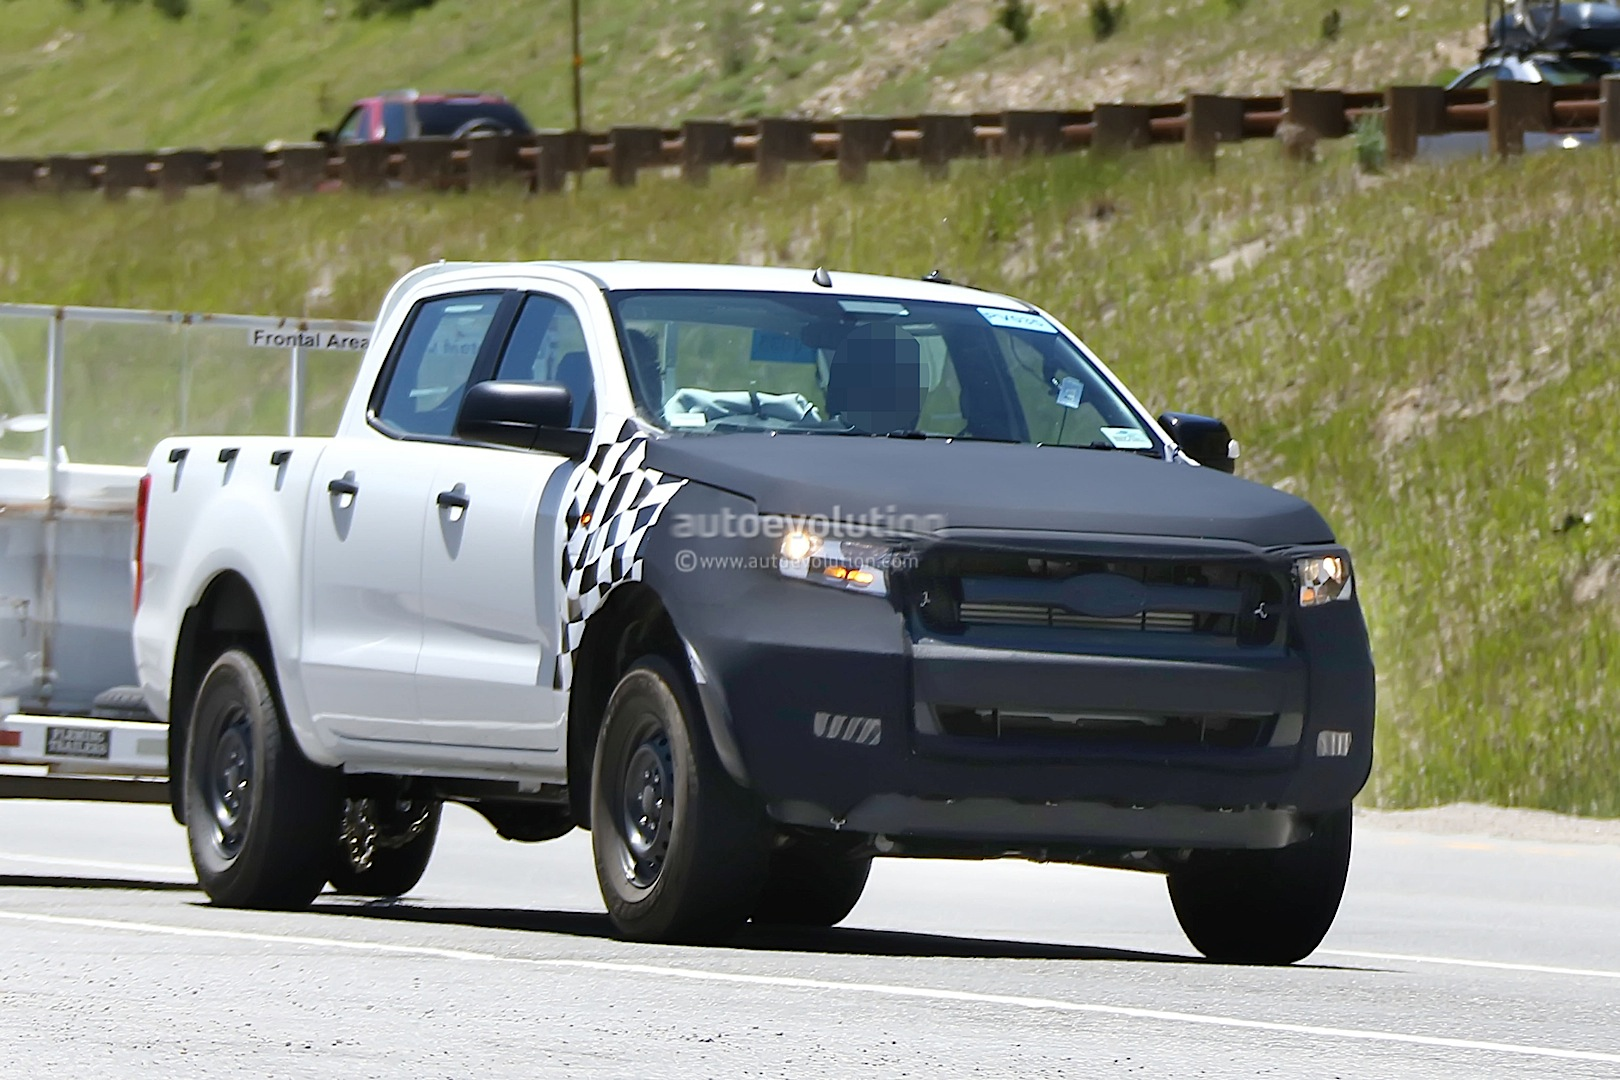 2015 ford ranger interior spied autoevolution. Black Bedroom Furniture Sets. Home Design Ideas